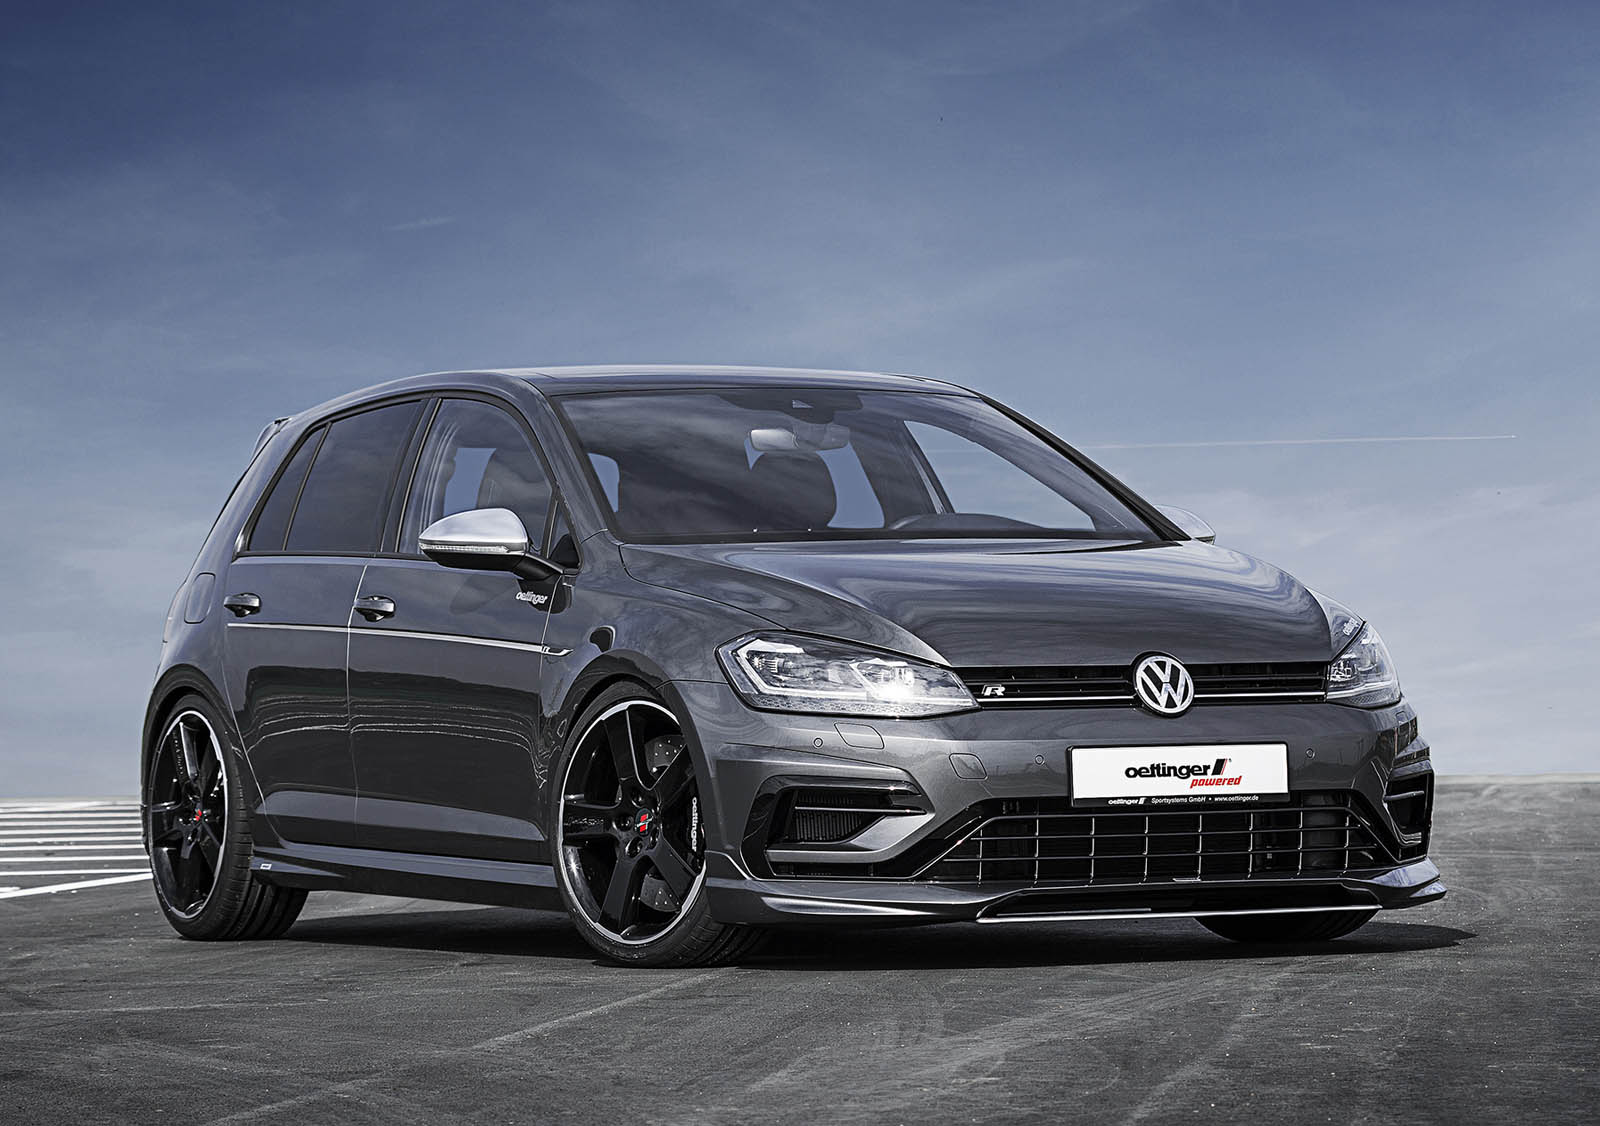 oettinger goes worthersee with comprehensive golf gti r upgrades. Black Bedroom Furniture Sets. Home Design Ideas